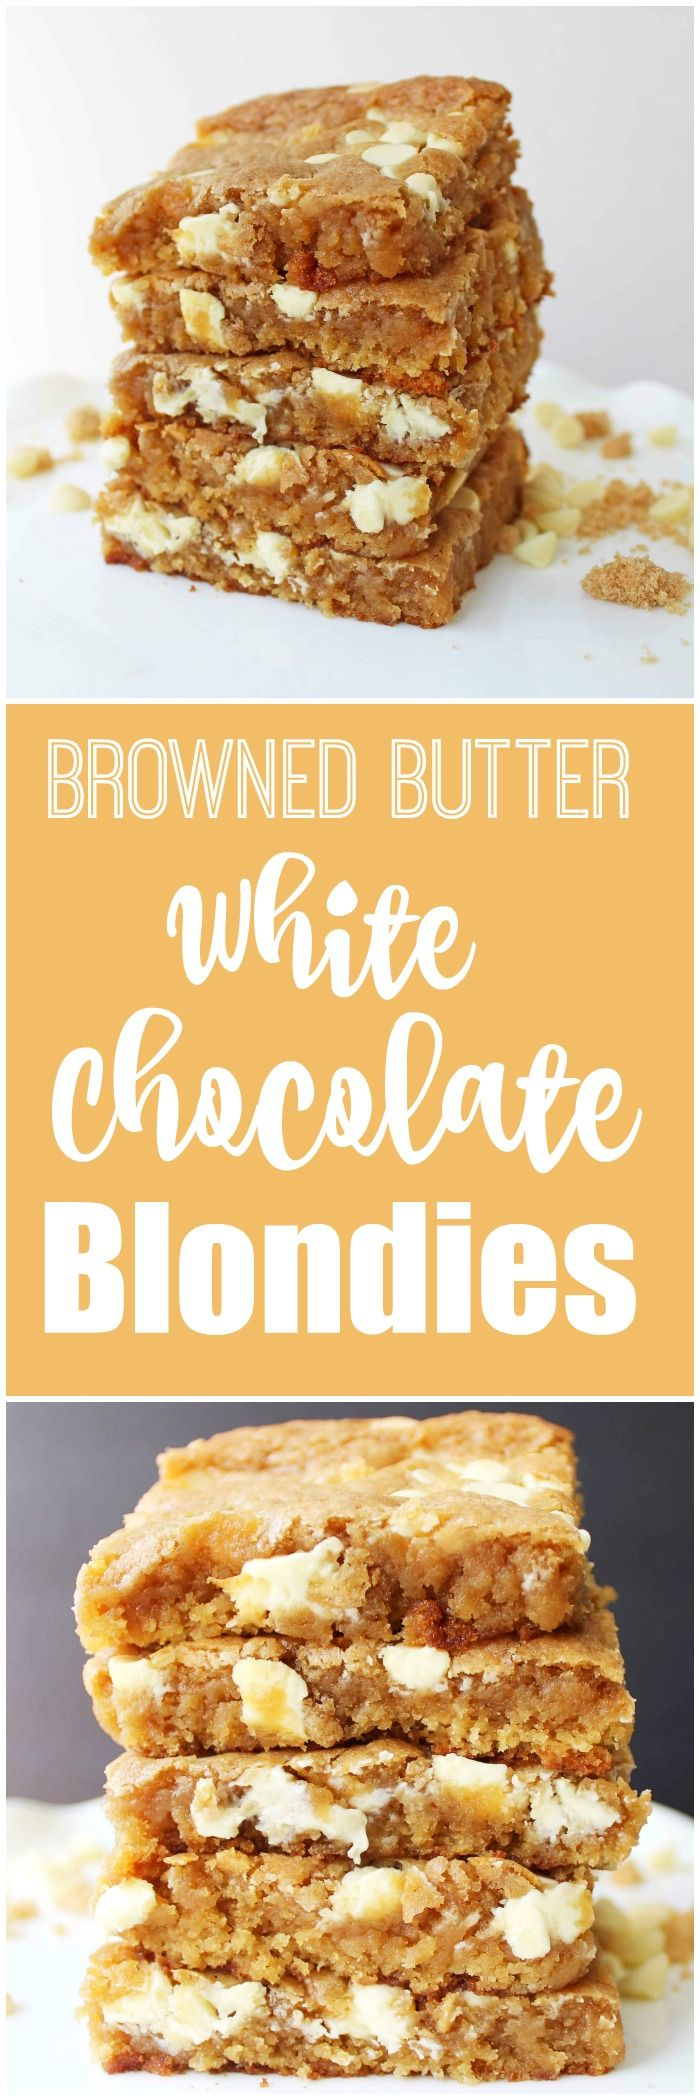 Browned Butter White Chocolate Blondies. Rich, toffee flavored dough studded with white chocolate chunks. A blondie is a brownie without the cocoa. One of the most popular dessert bars out there.